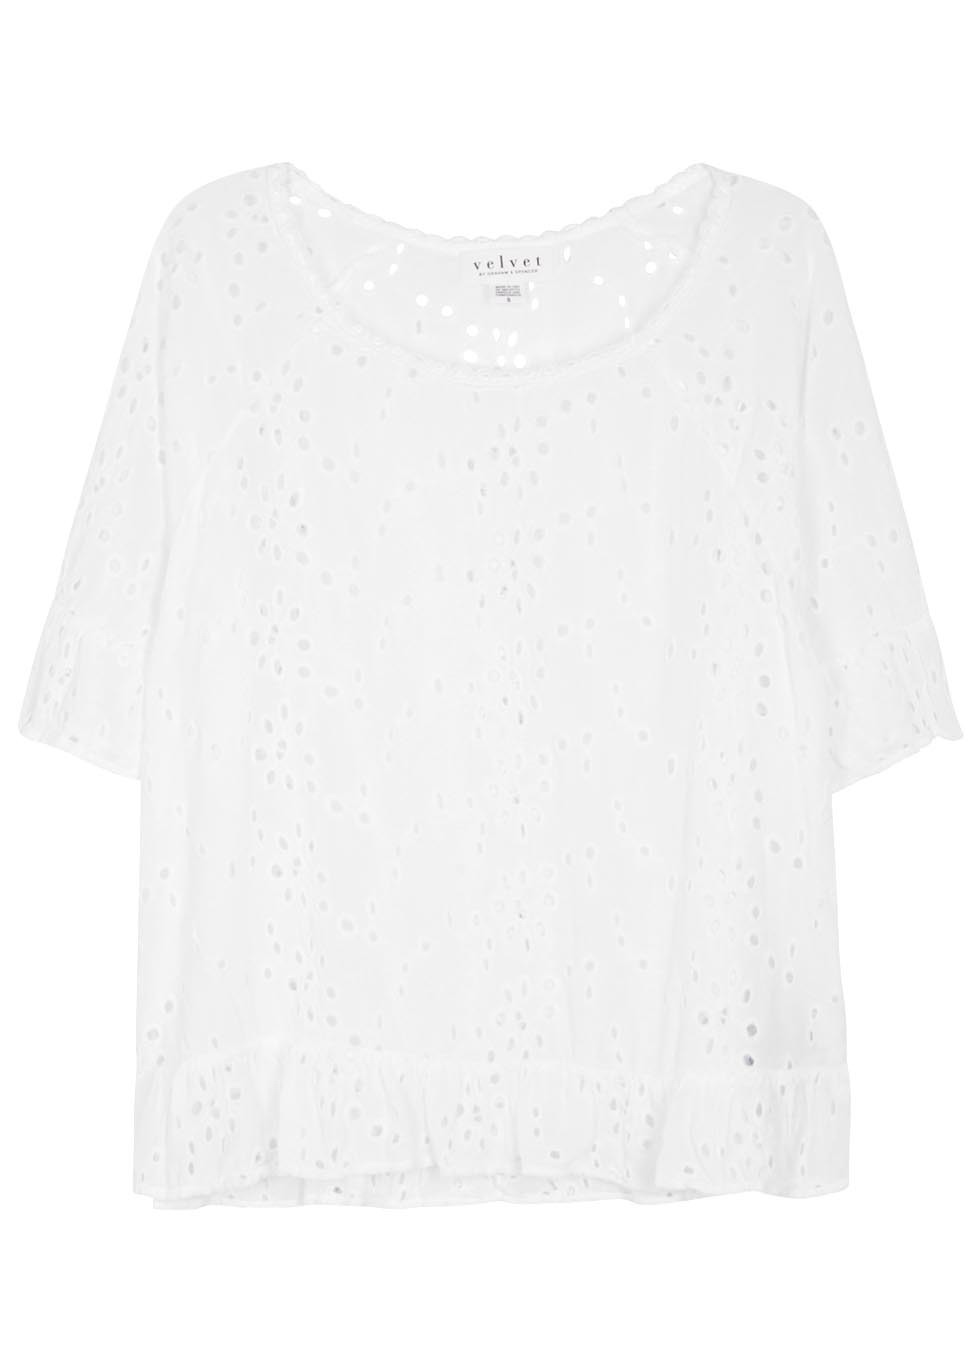 Ricky White Broderie Anglaise Top - neckline: round neck; pattern: plain; predominant colour: white; occasions: casual; length: standard; style: top; fibres: viscose/rayon - 100%; fit: body skimming; sleeve length: short sleeve; sleeve style: standard; pattern type: fabric; texture group: broiderie anglais; season: s/s 2016